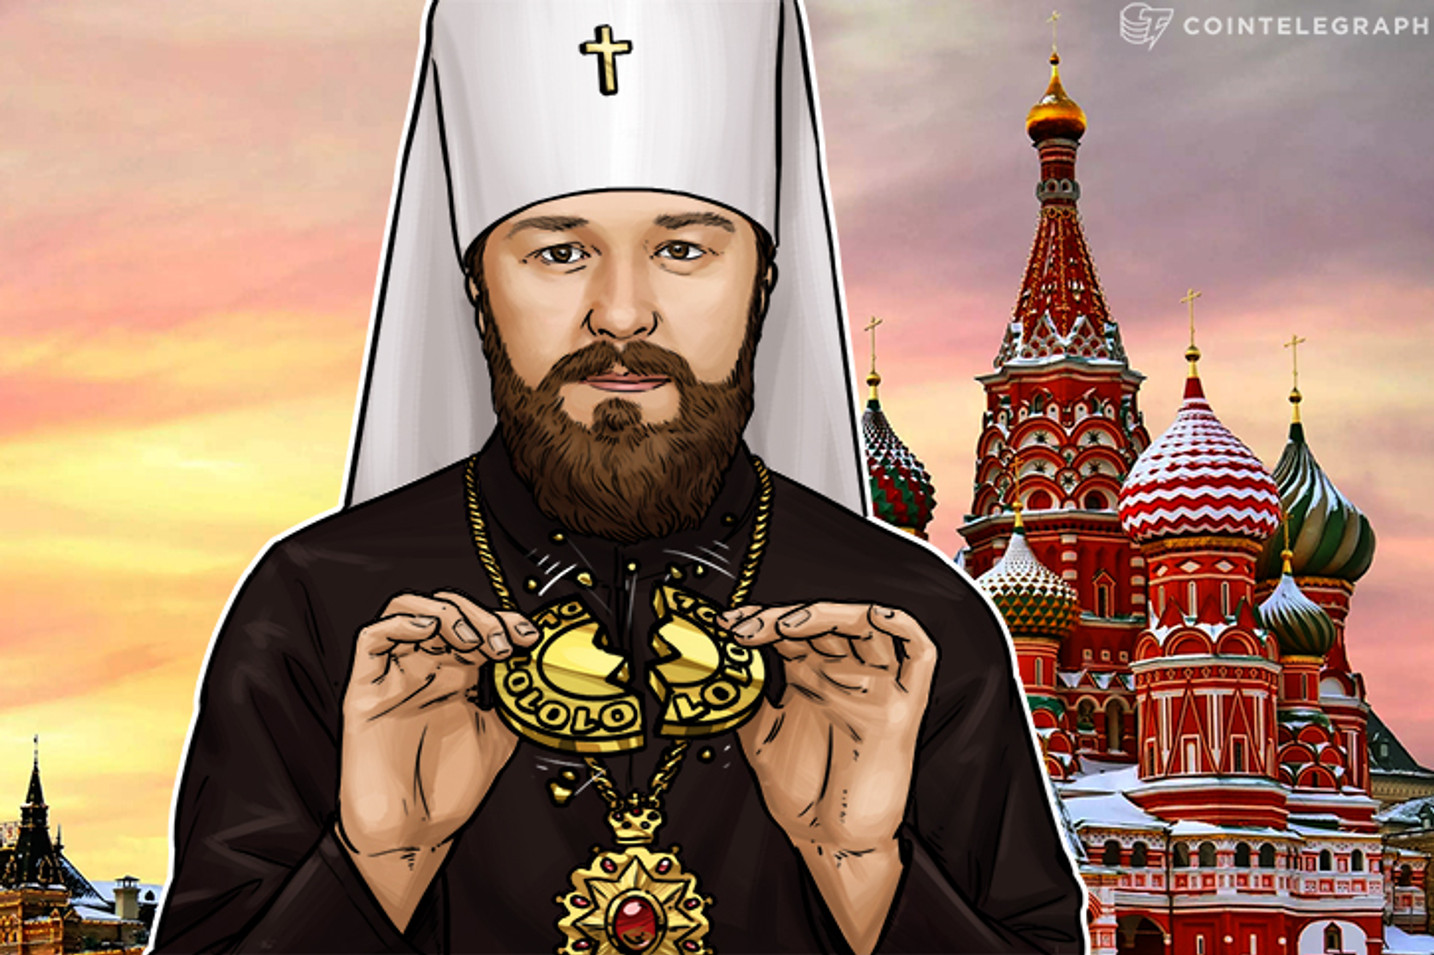 Russian Bishop Condemns Cryptocurrencies